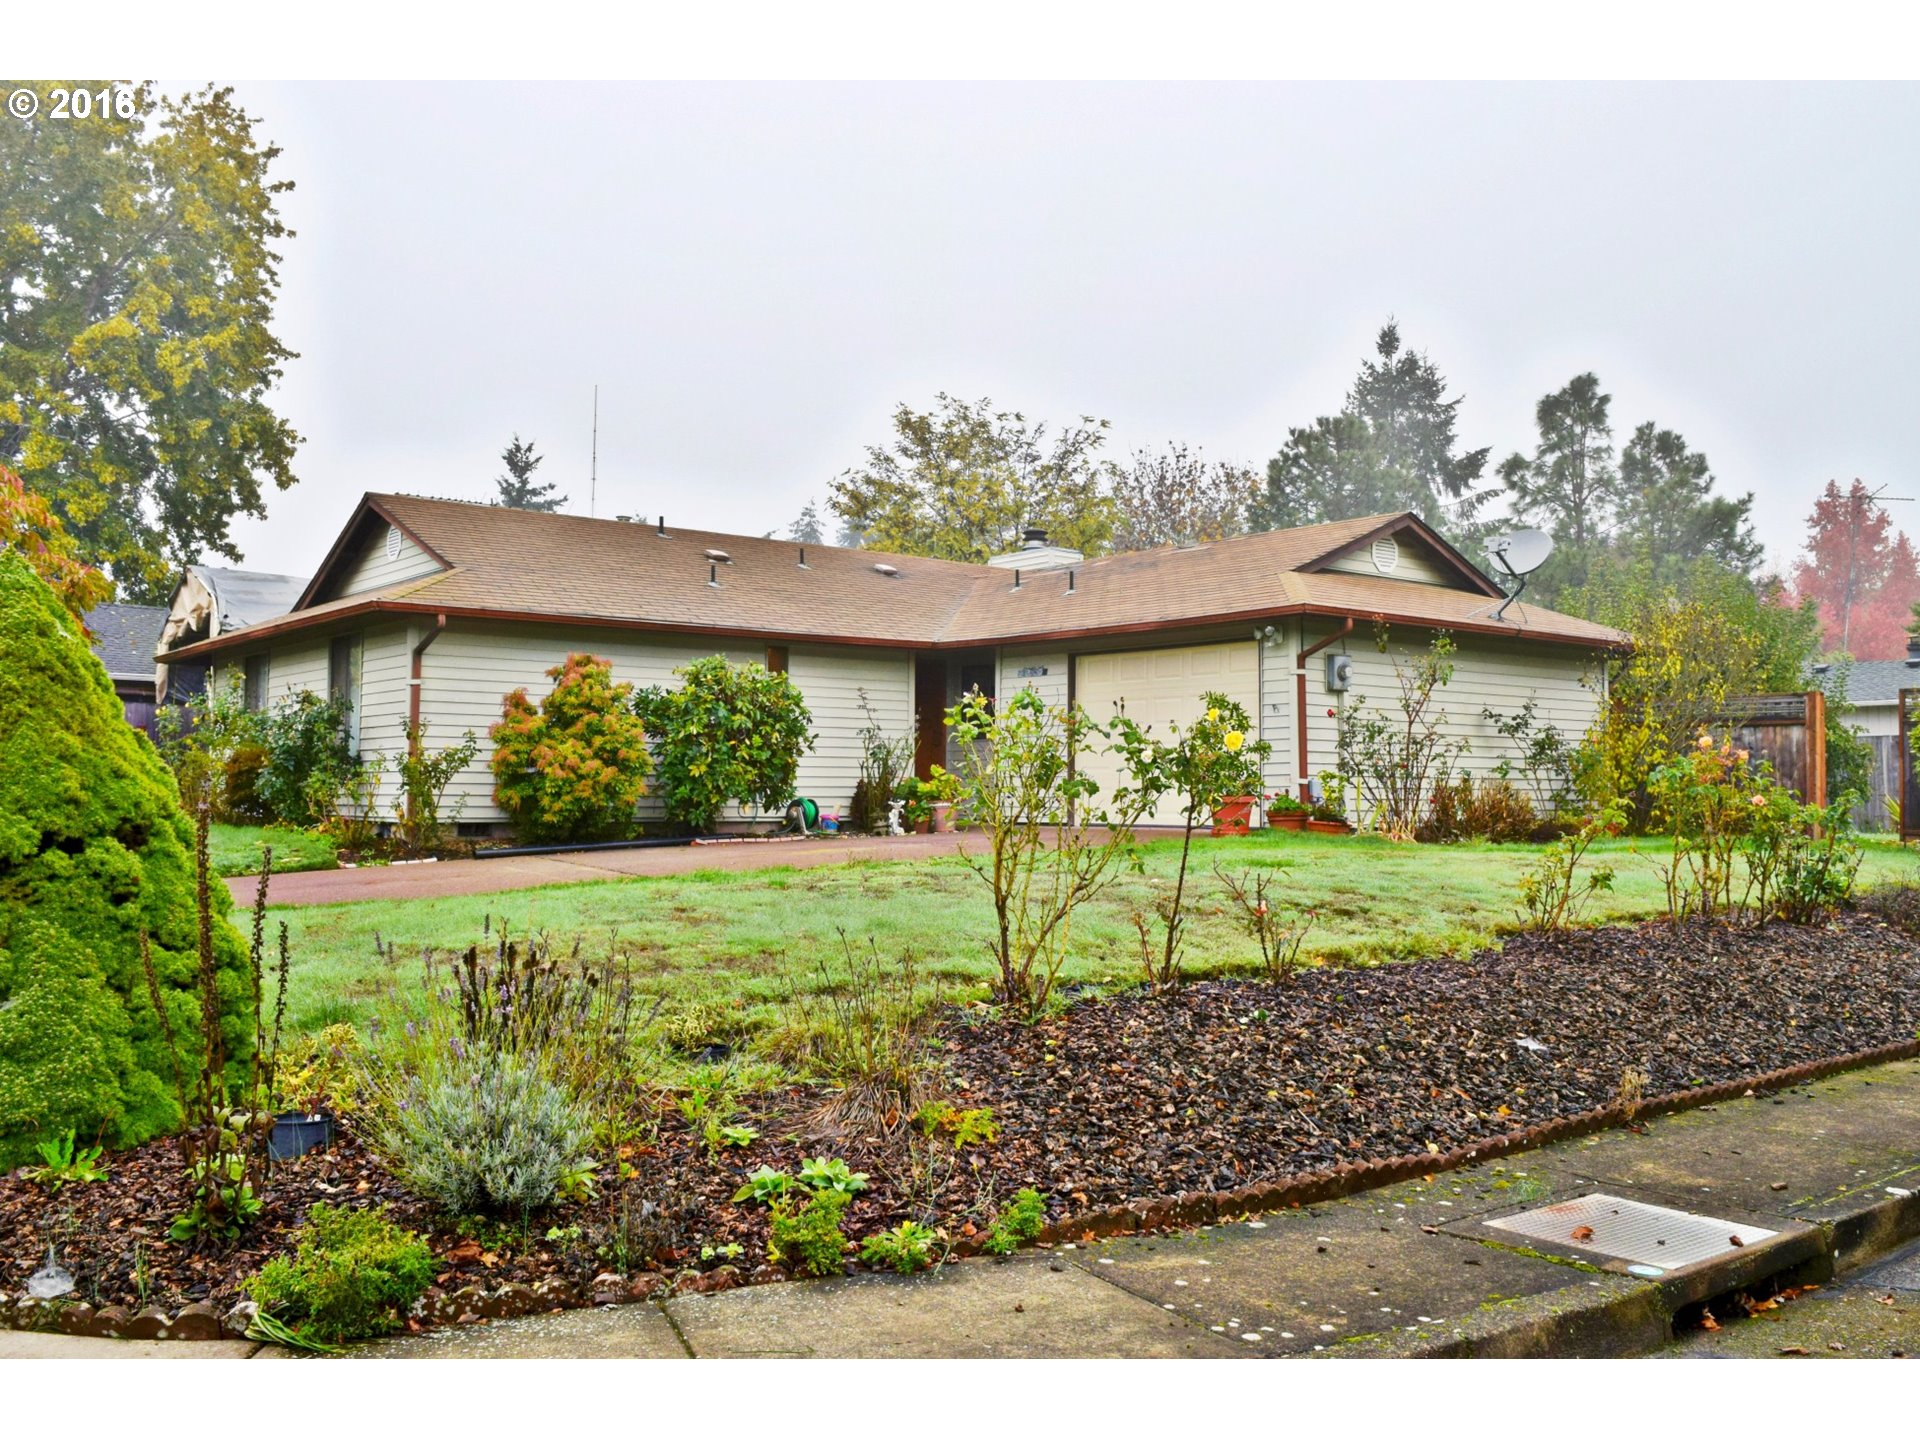 491 SE POWELL AVE, Corvallis, OR 97333